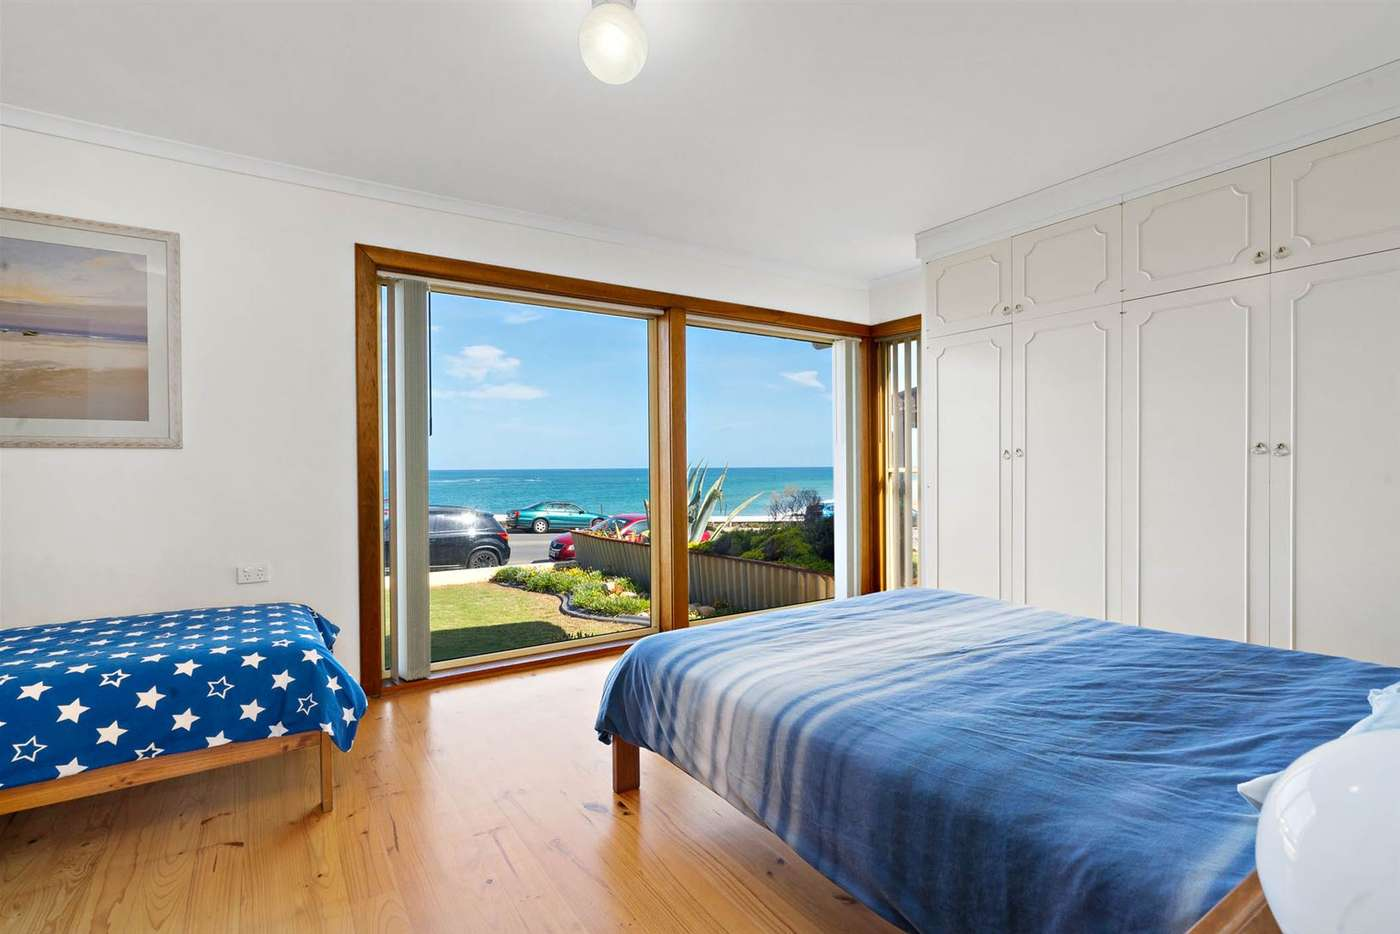 Fifth view of Homely house listing, 54 Esplanade, Christies Beach SA 5165